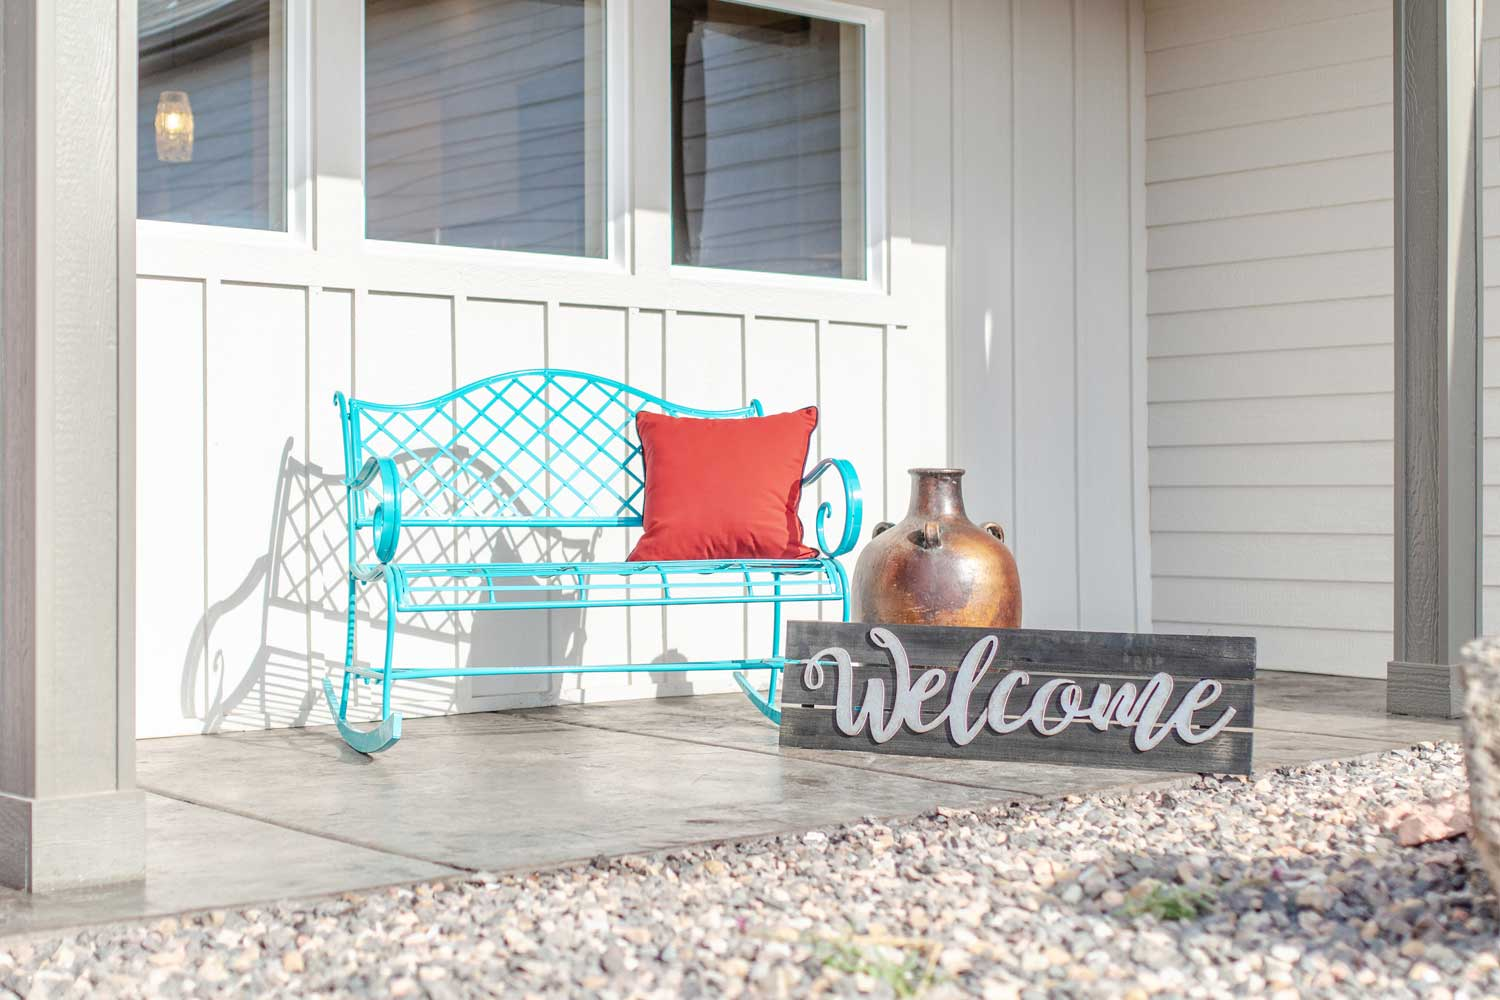 bench on the front porch with a welcome sign made of wood